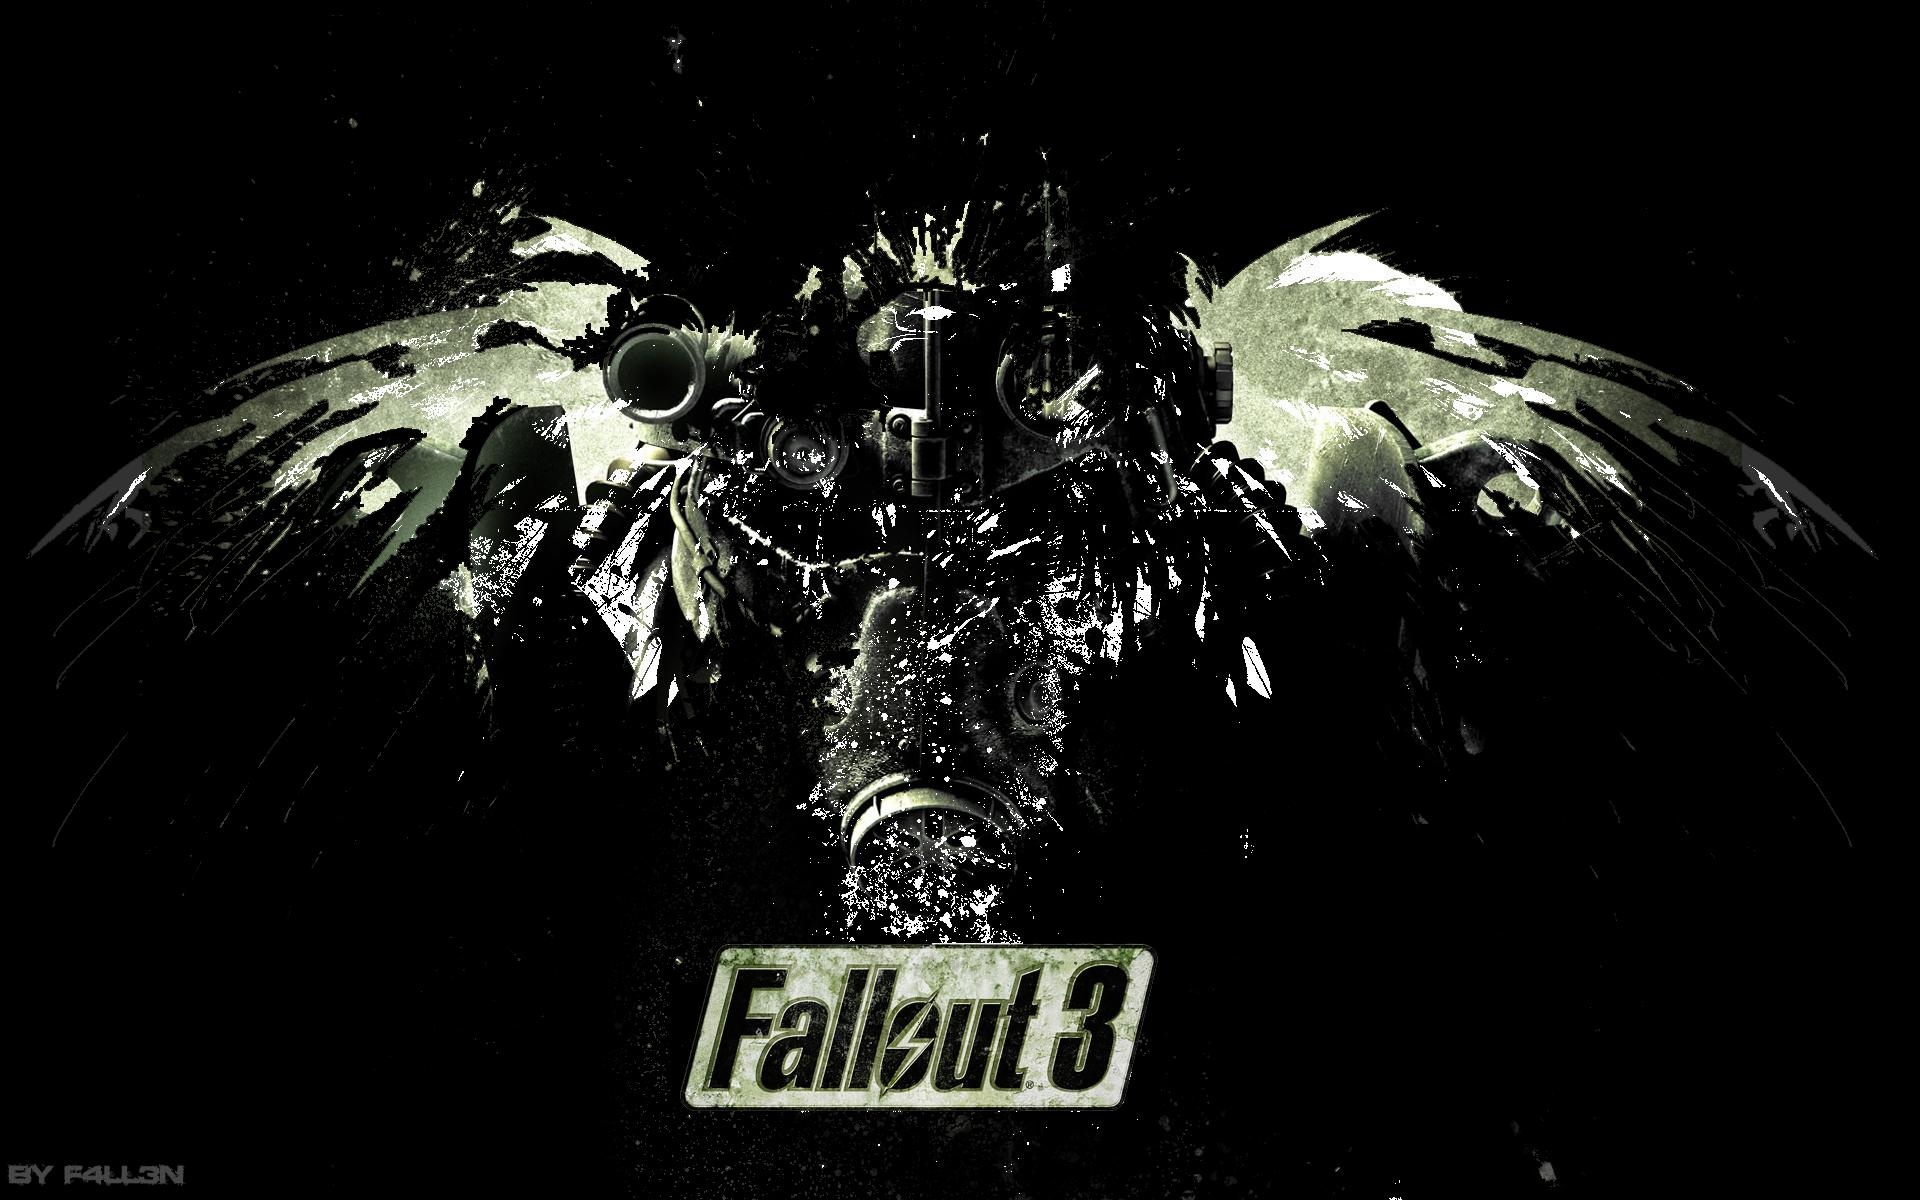 Fallout 3 Wallpapers Best Wallpapers 1920x1200